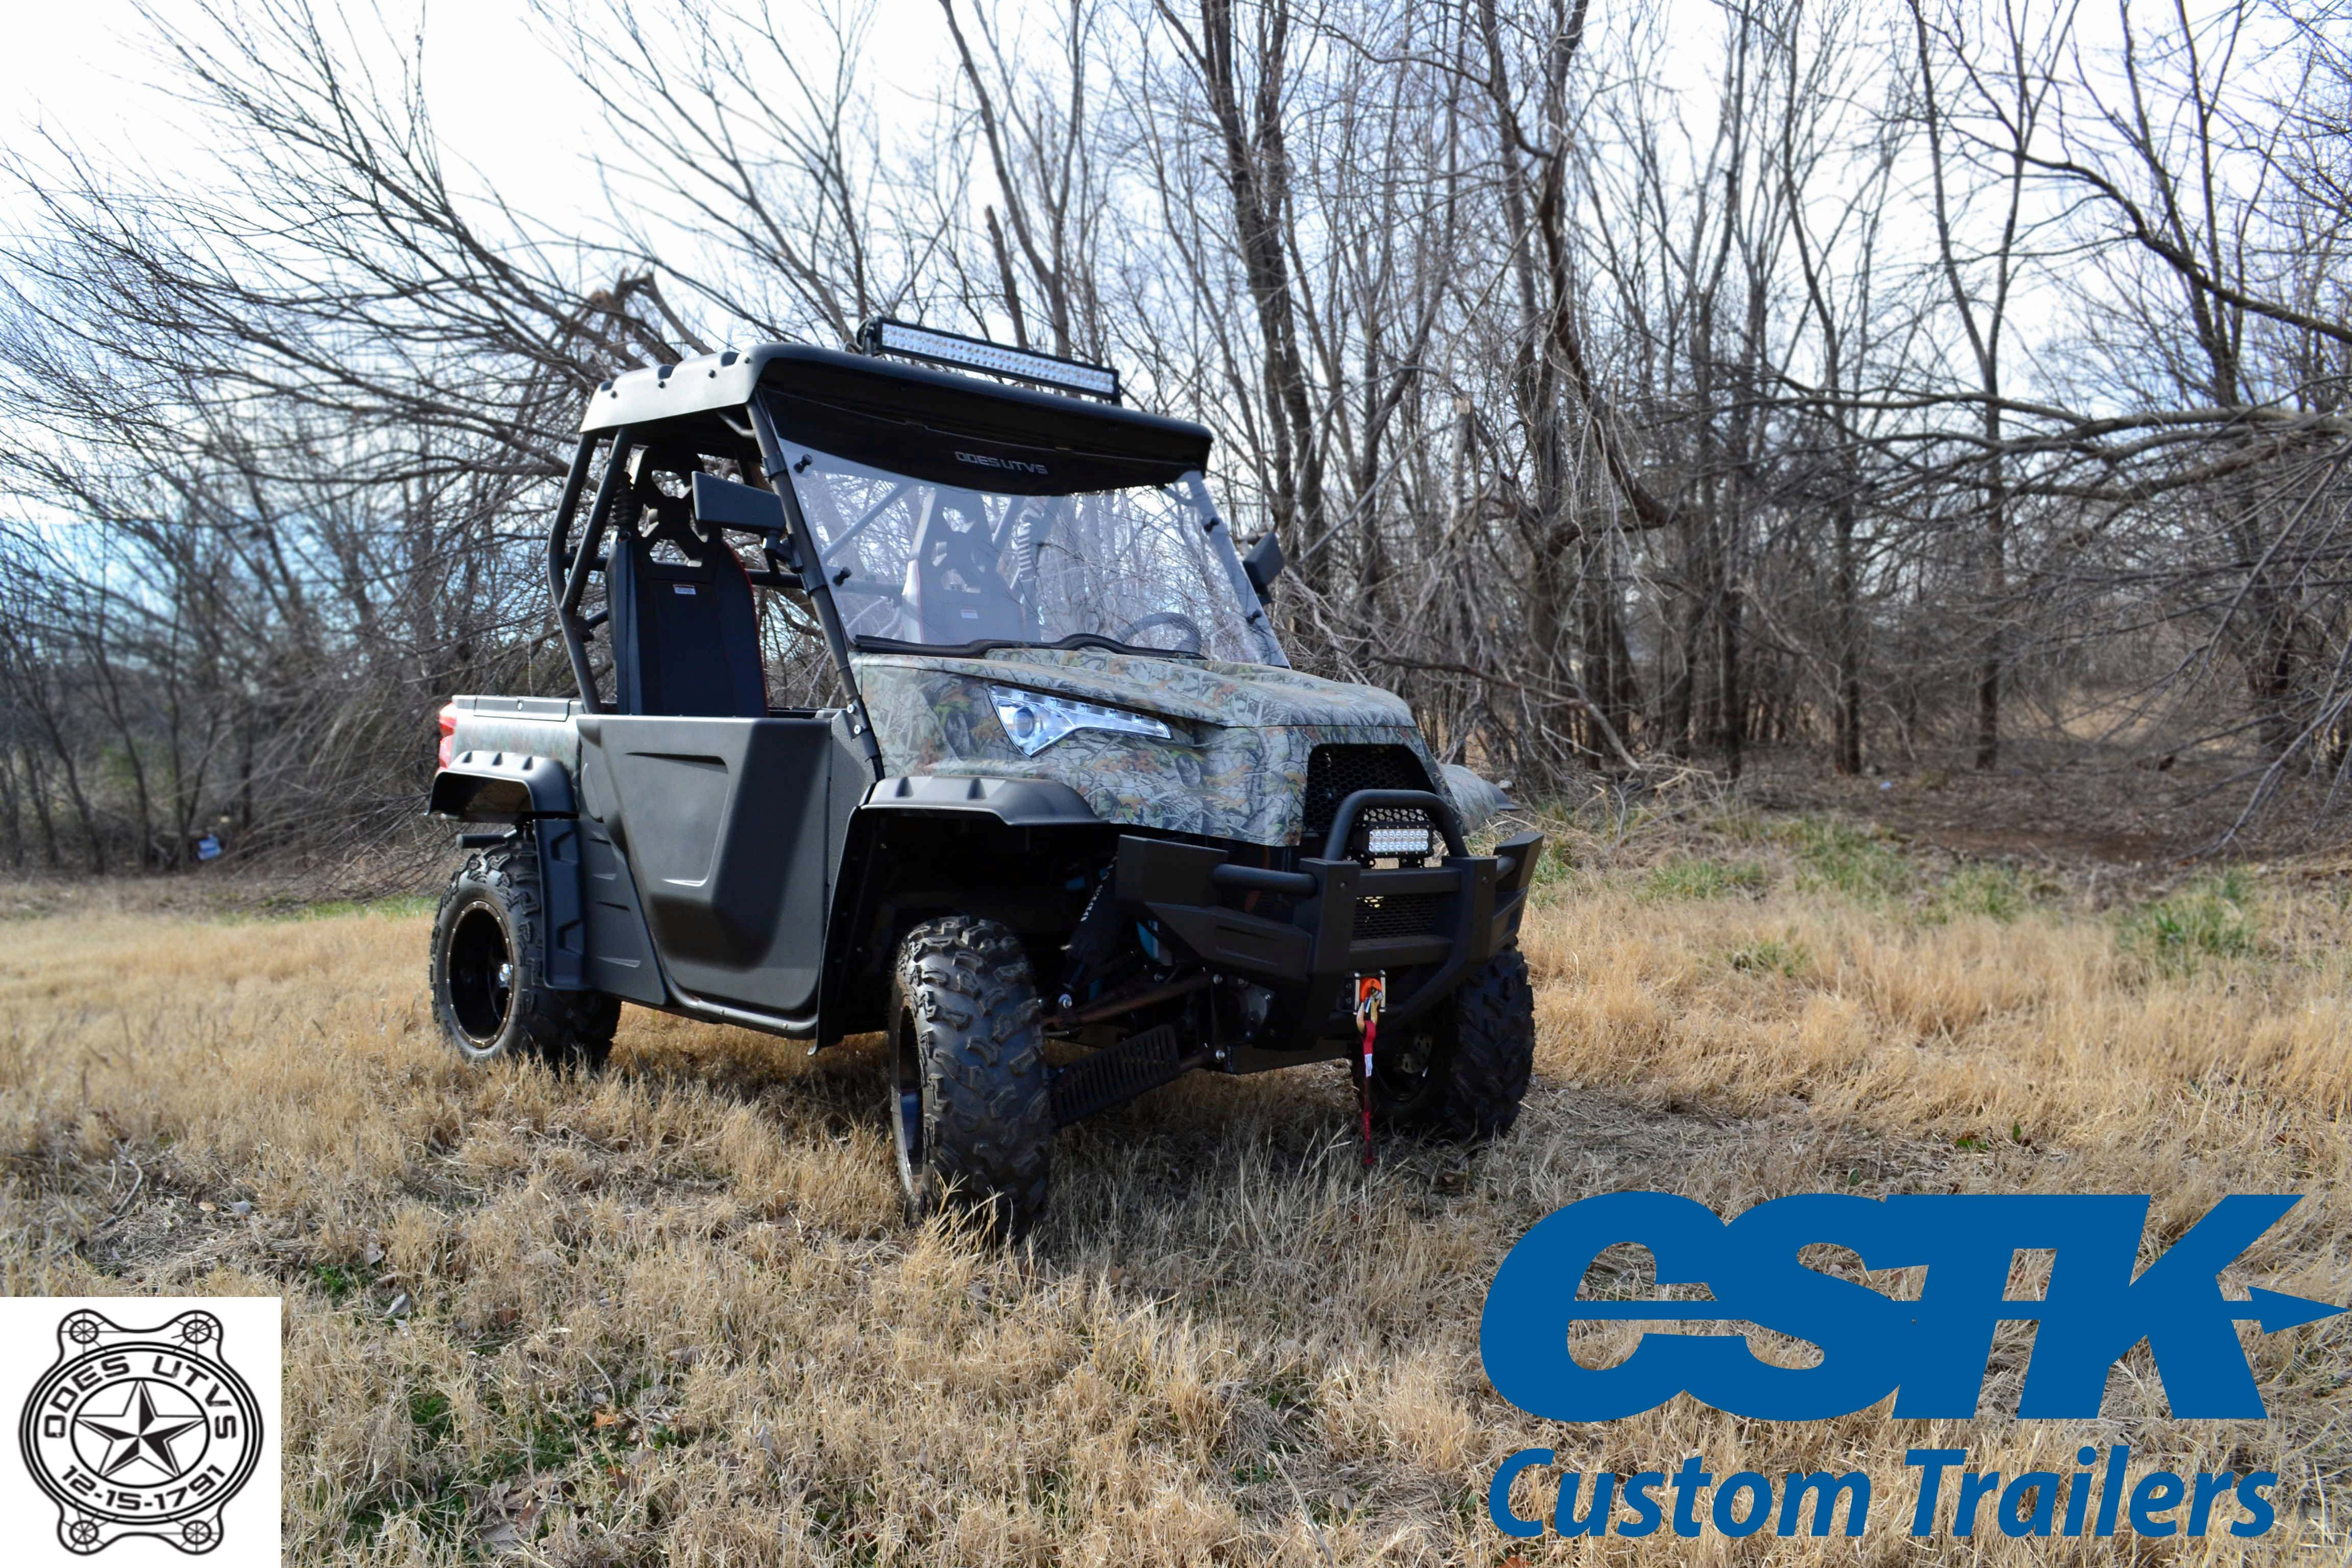 Odes utv 800cc dominator x 2 in camo led light bars roll cage led light bars roll cage frontrear winch dump bed all standard on the 2016 model cstk custom trailers is an authorized dealer and service center mozeypictures Gallery